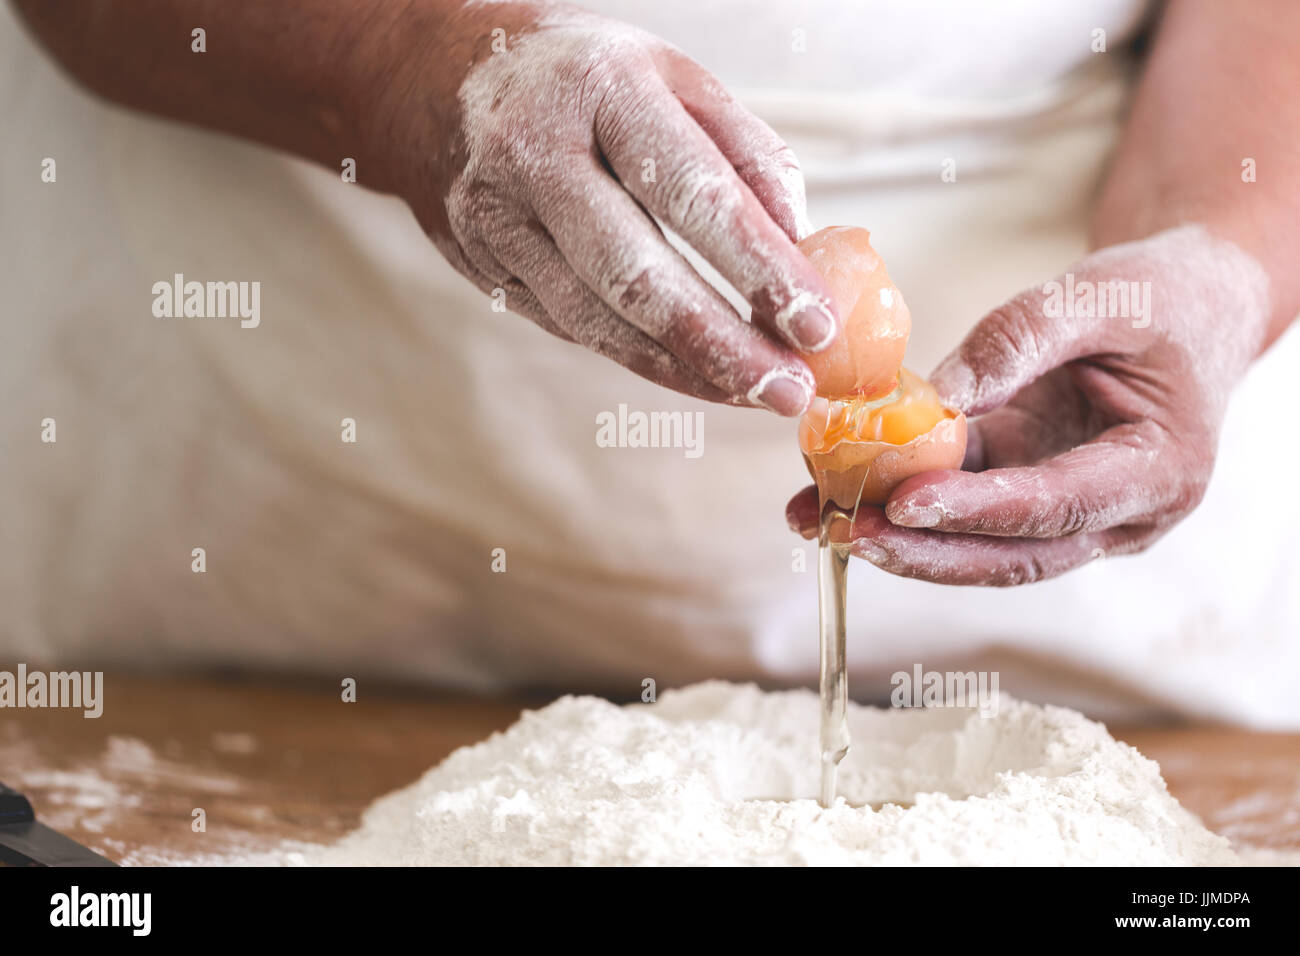 Senior woman adding egg to pastry. Focus on broken egg and old working hands. Horizontal orientation, saturated - Stock Image